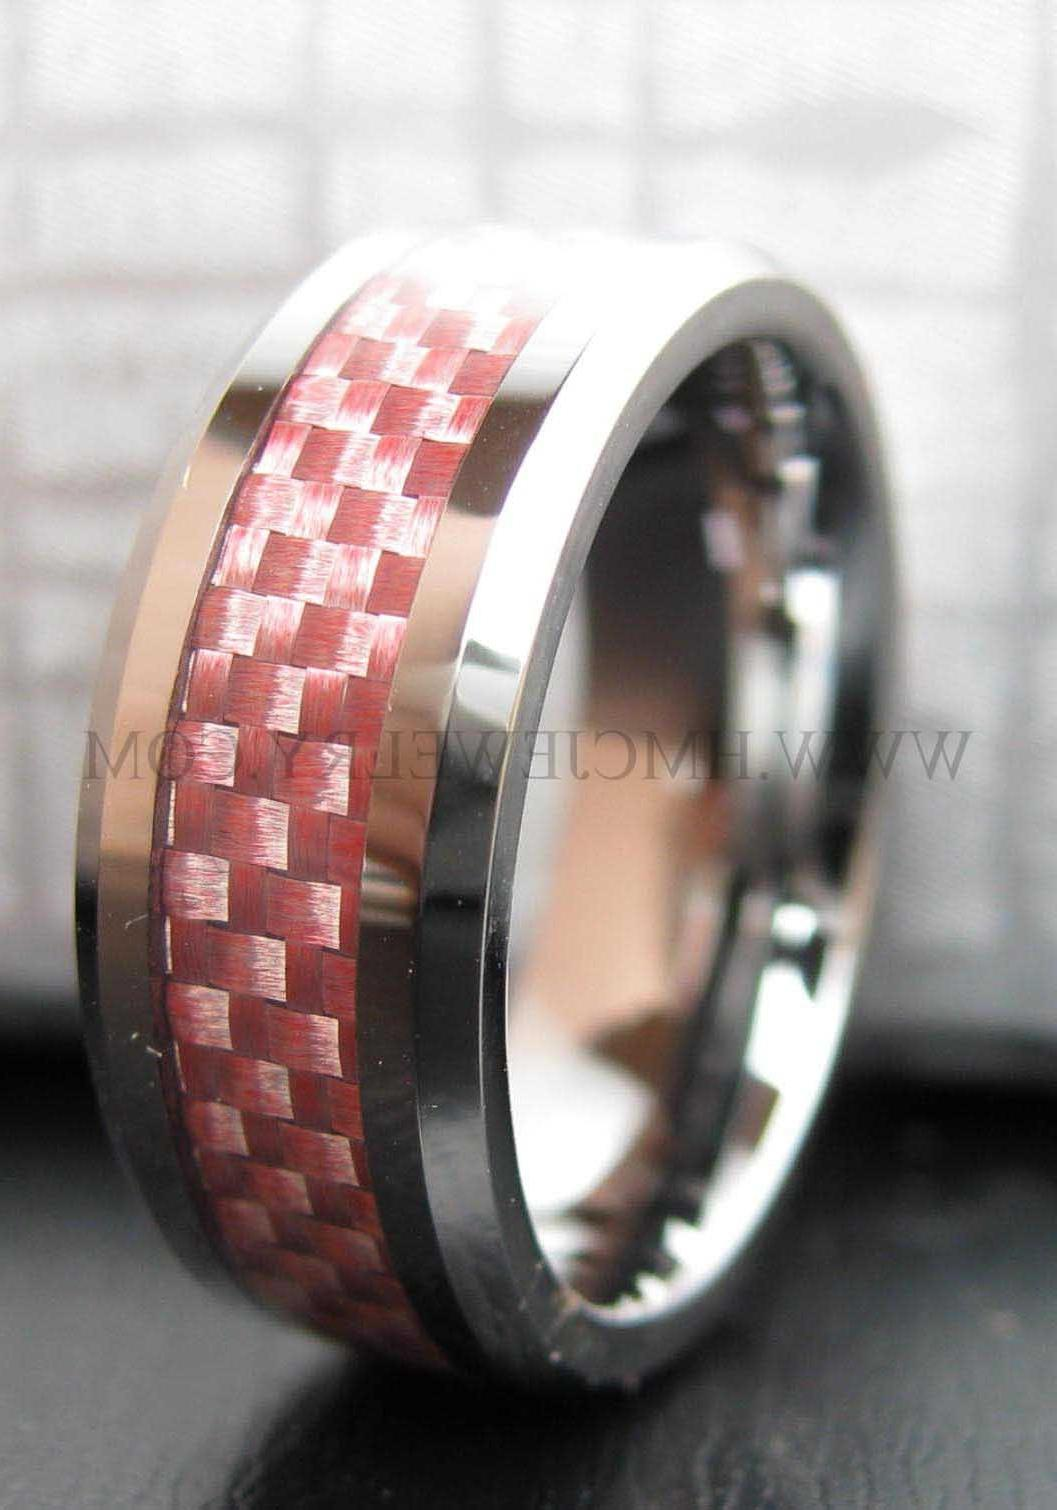 Name: 2010 New Tungsten ring